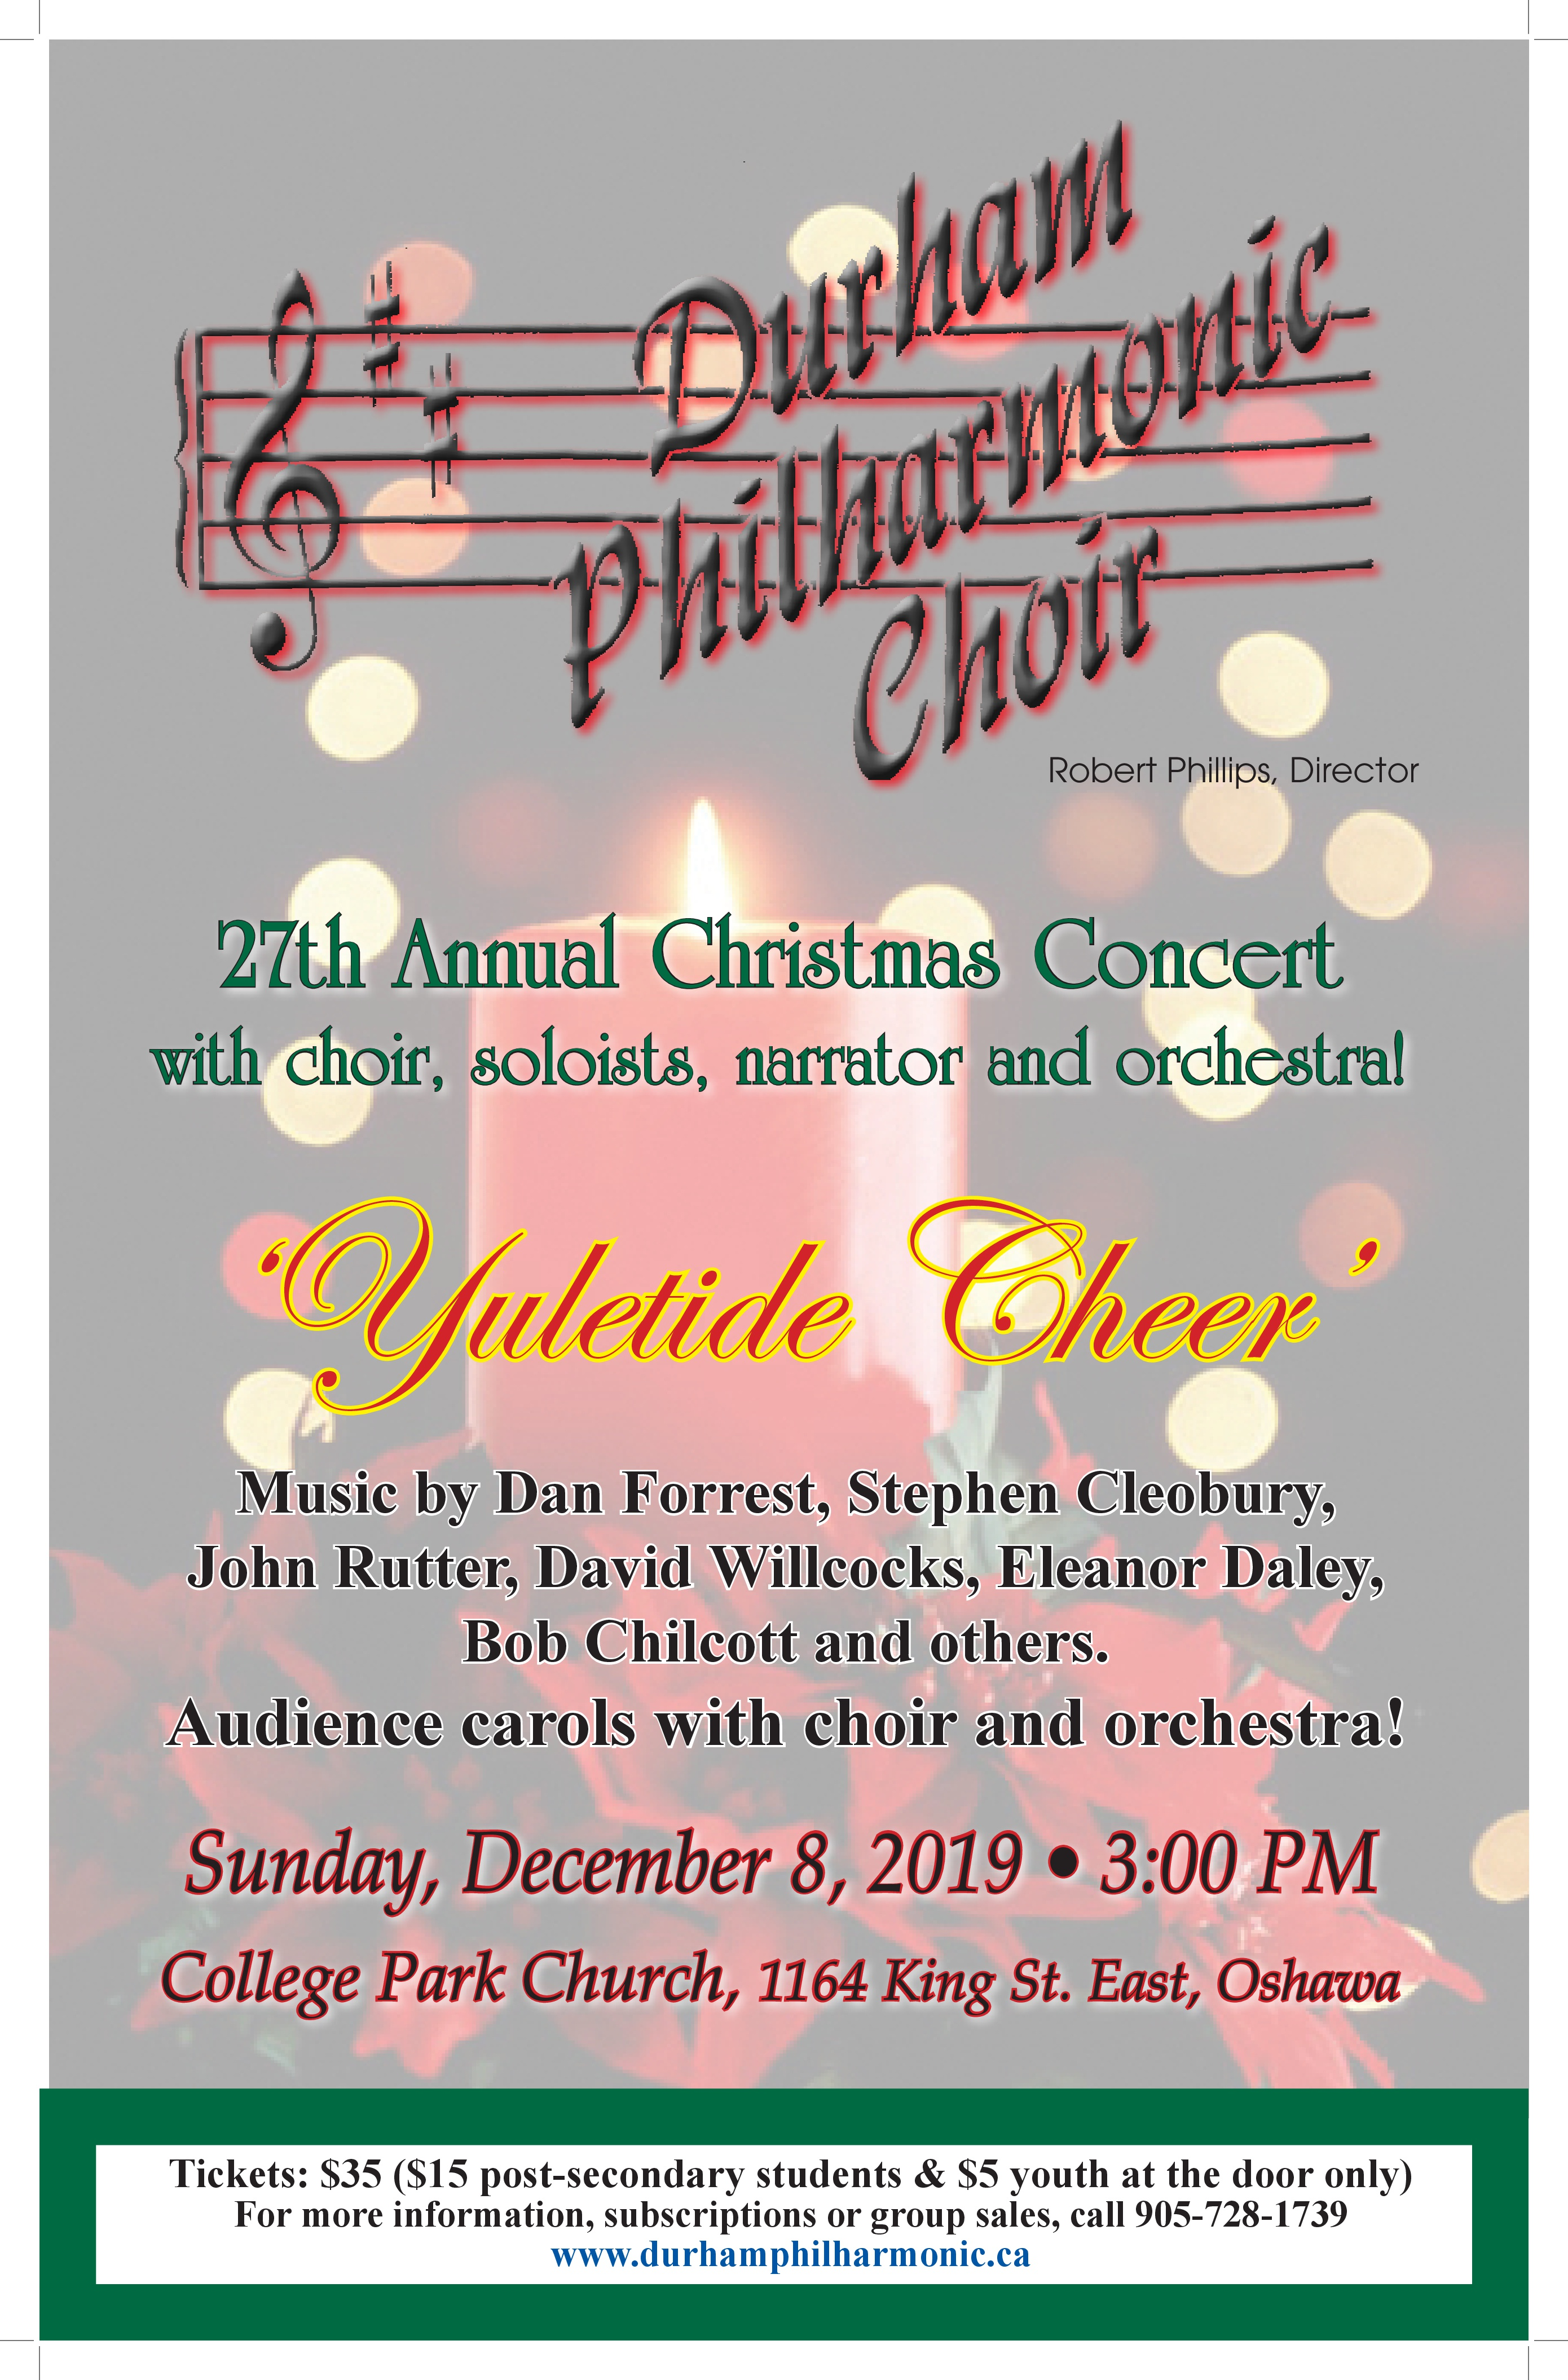 Durham Philharmonic Choir Christmas Concert YULETIDE CHEER!